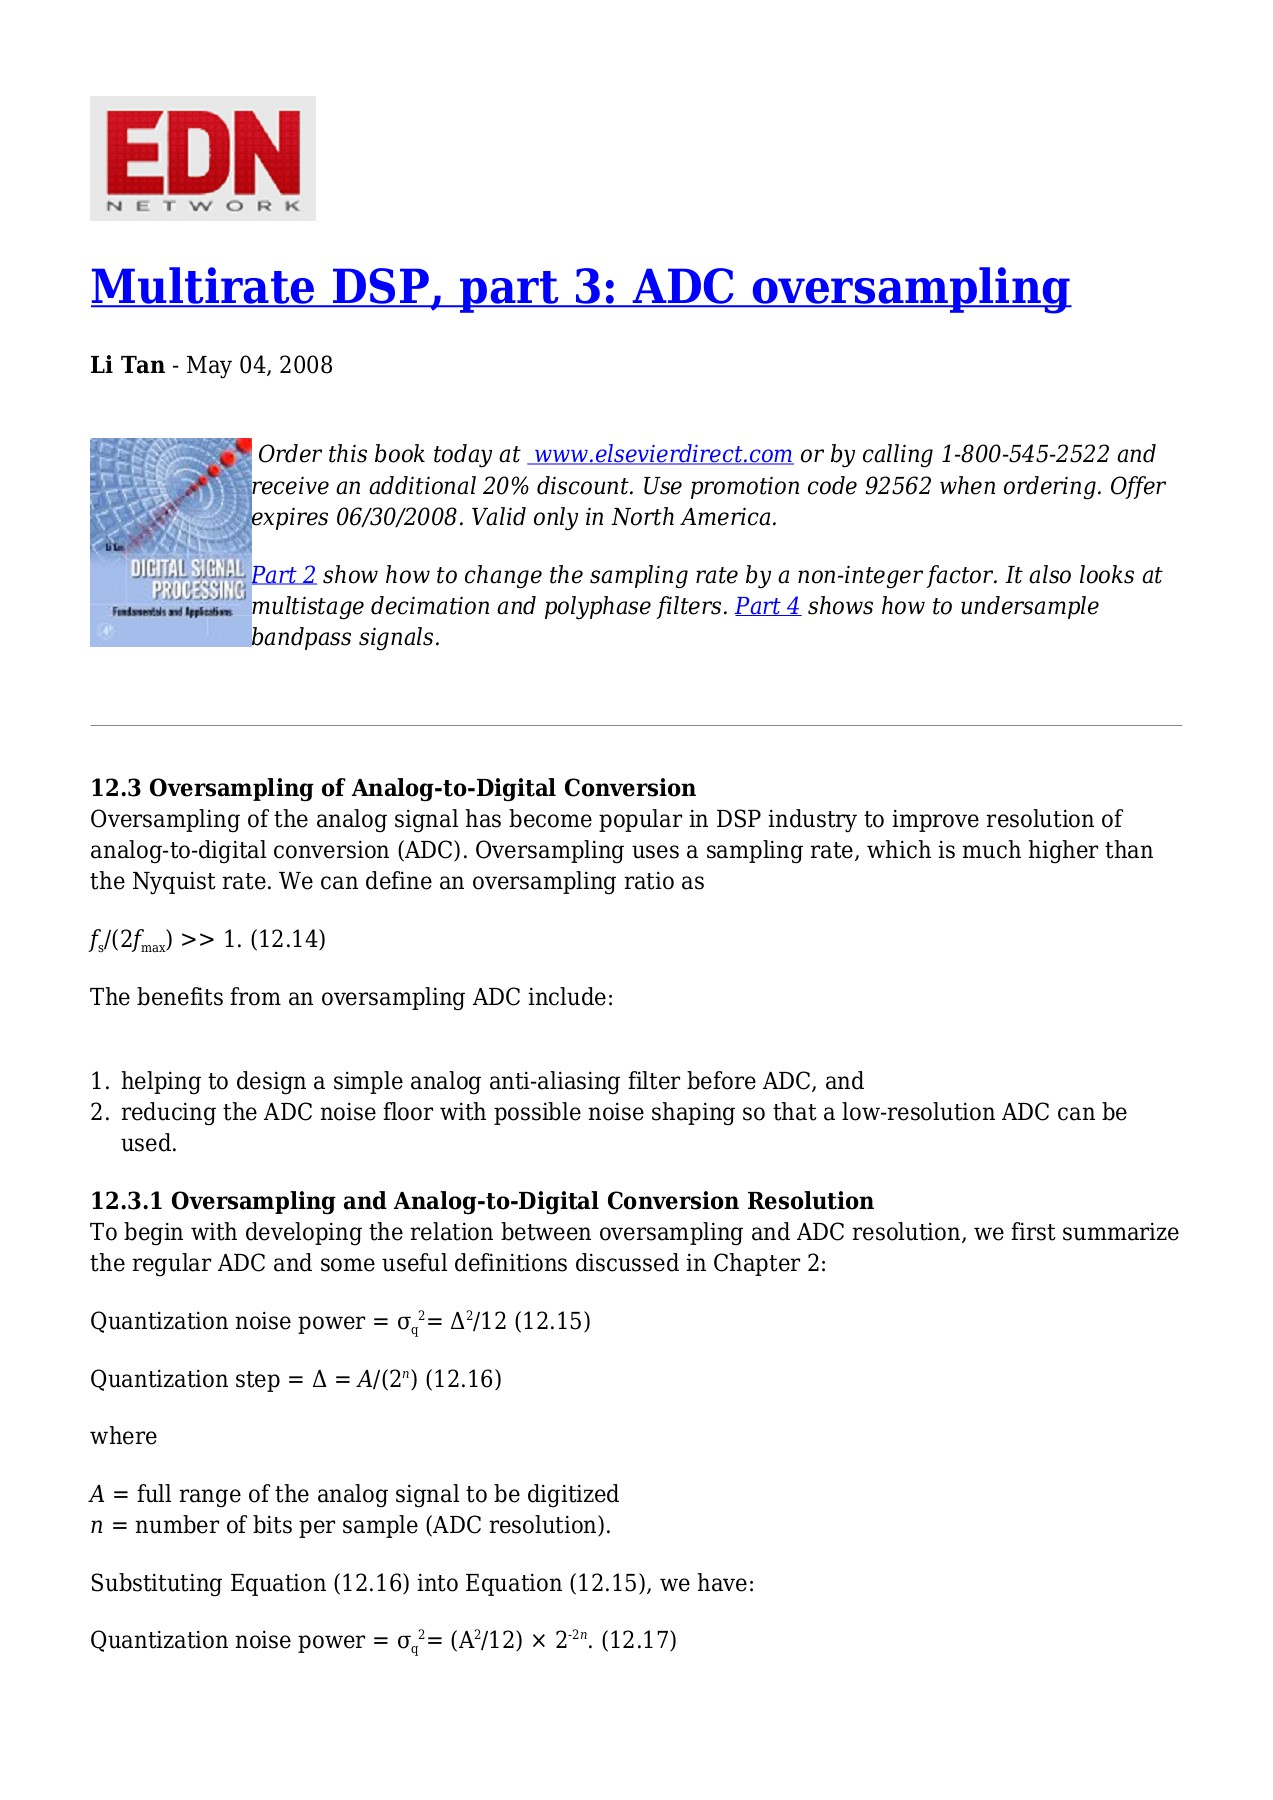 Multirate DSP, part 3: ADC oversampling Pages 1 - 10 - Text